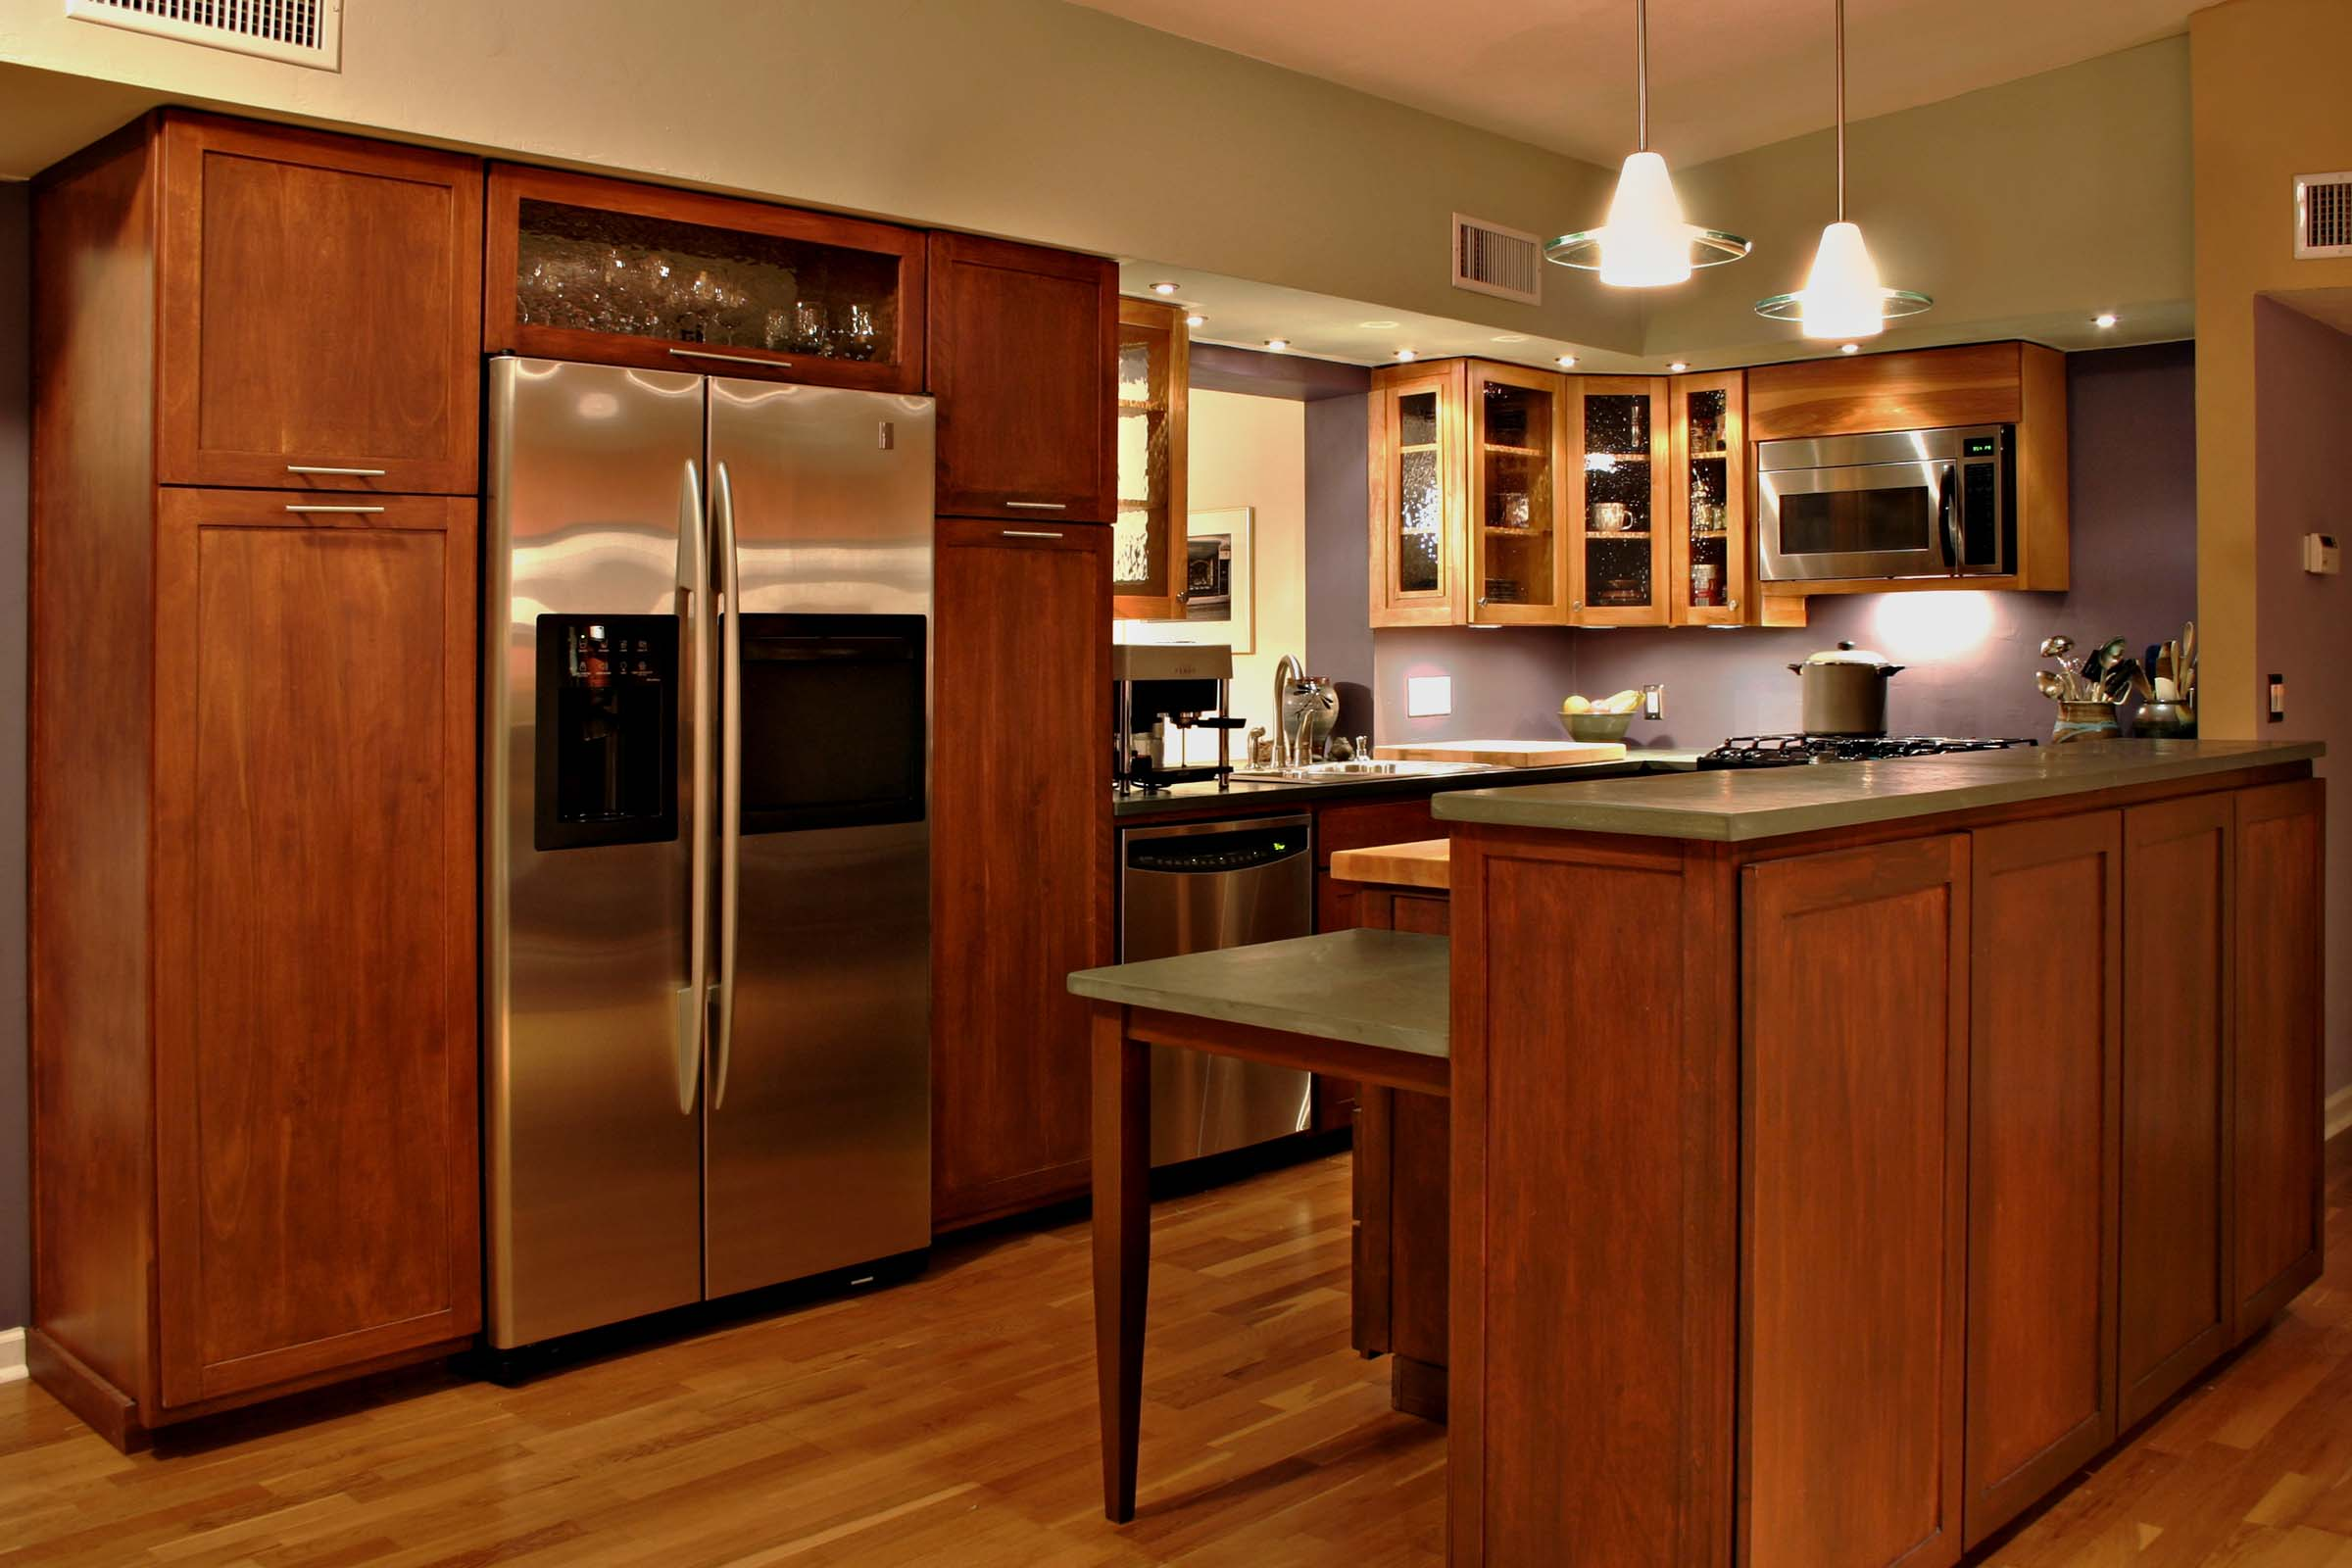 Kitchen Remodel Richmond Va Remodeling And Renovation Services In Richmond Va